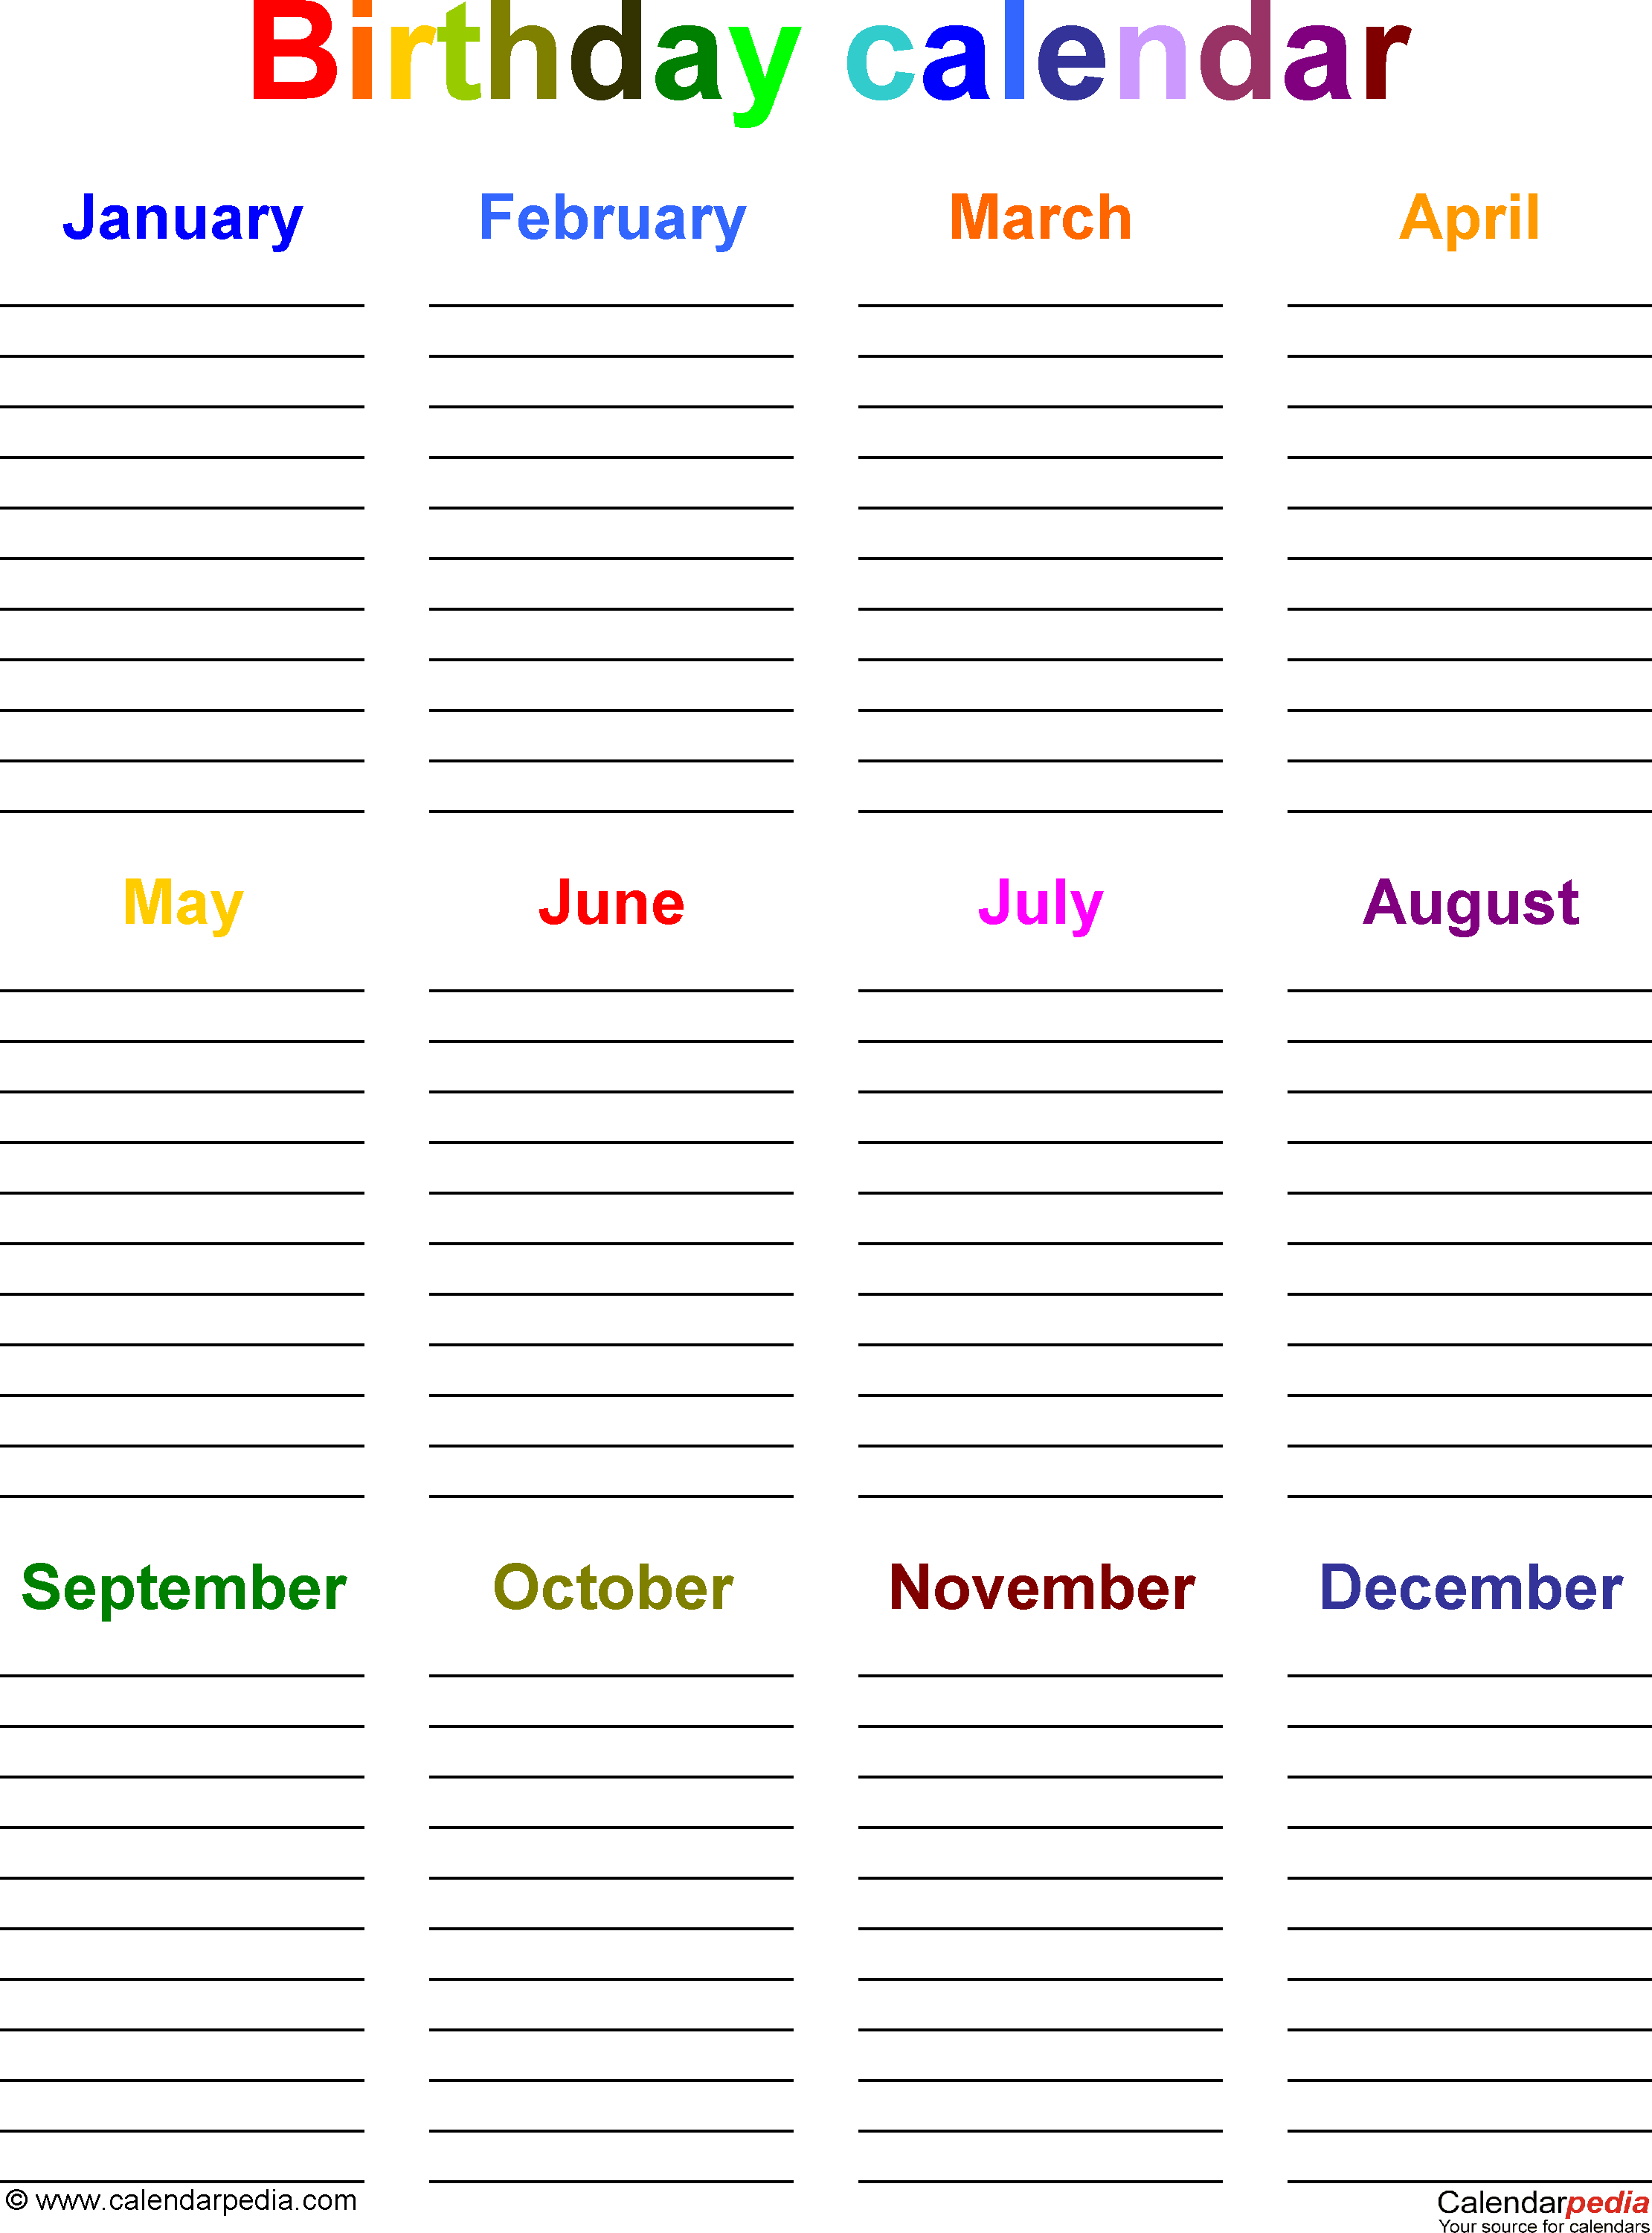 Birthday calendars 7 free printable Word templates